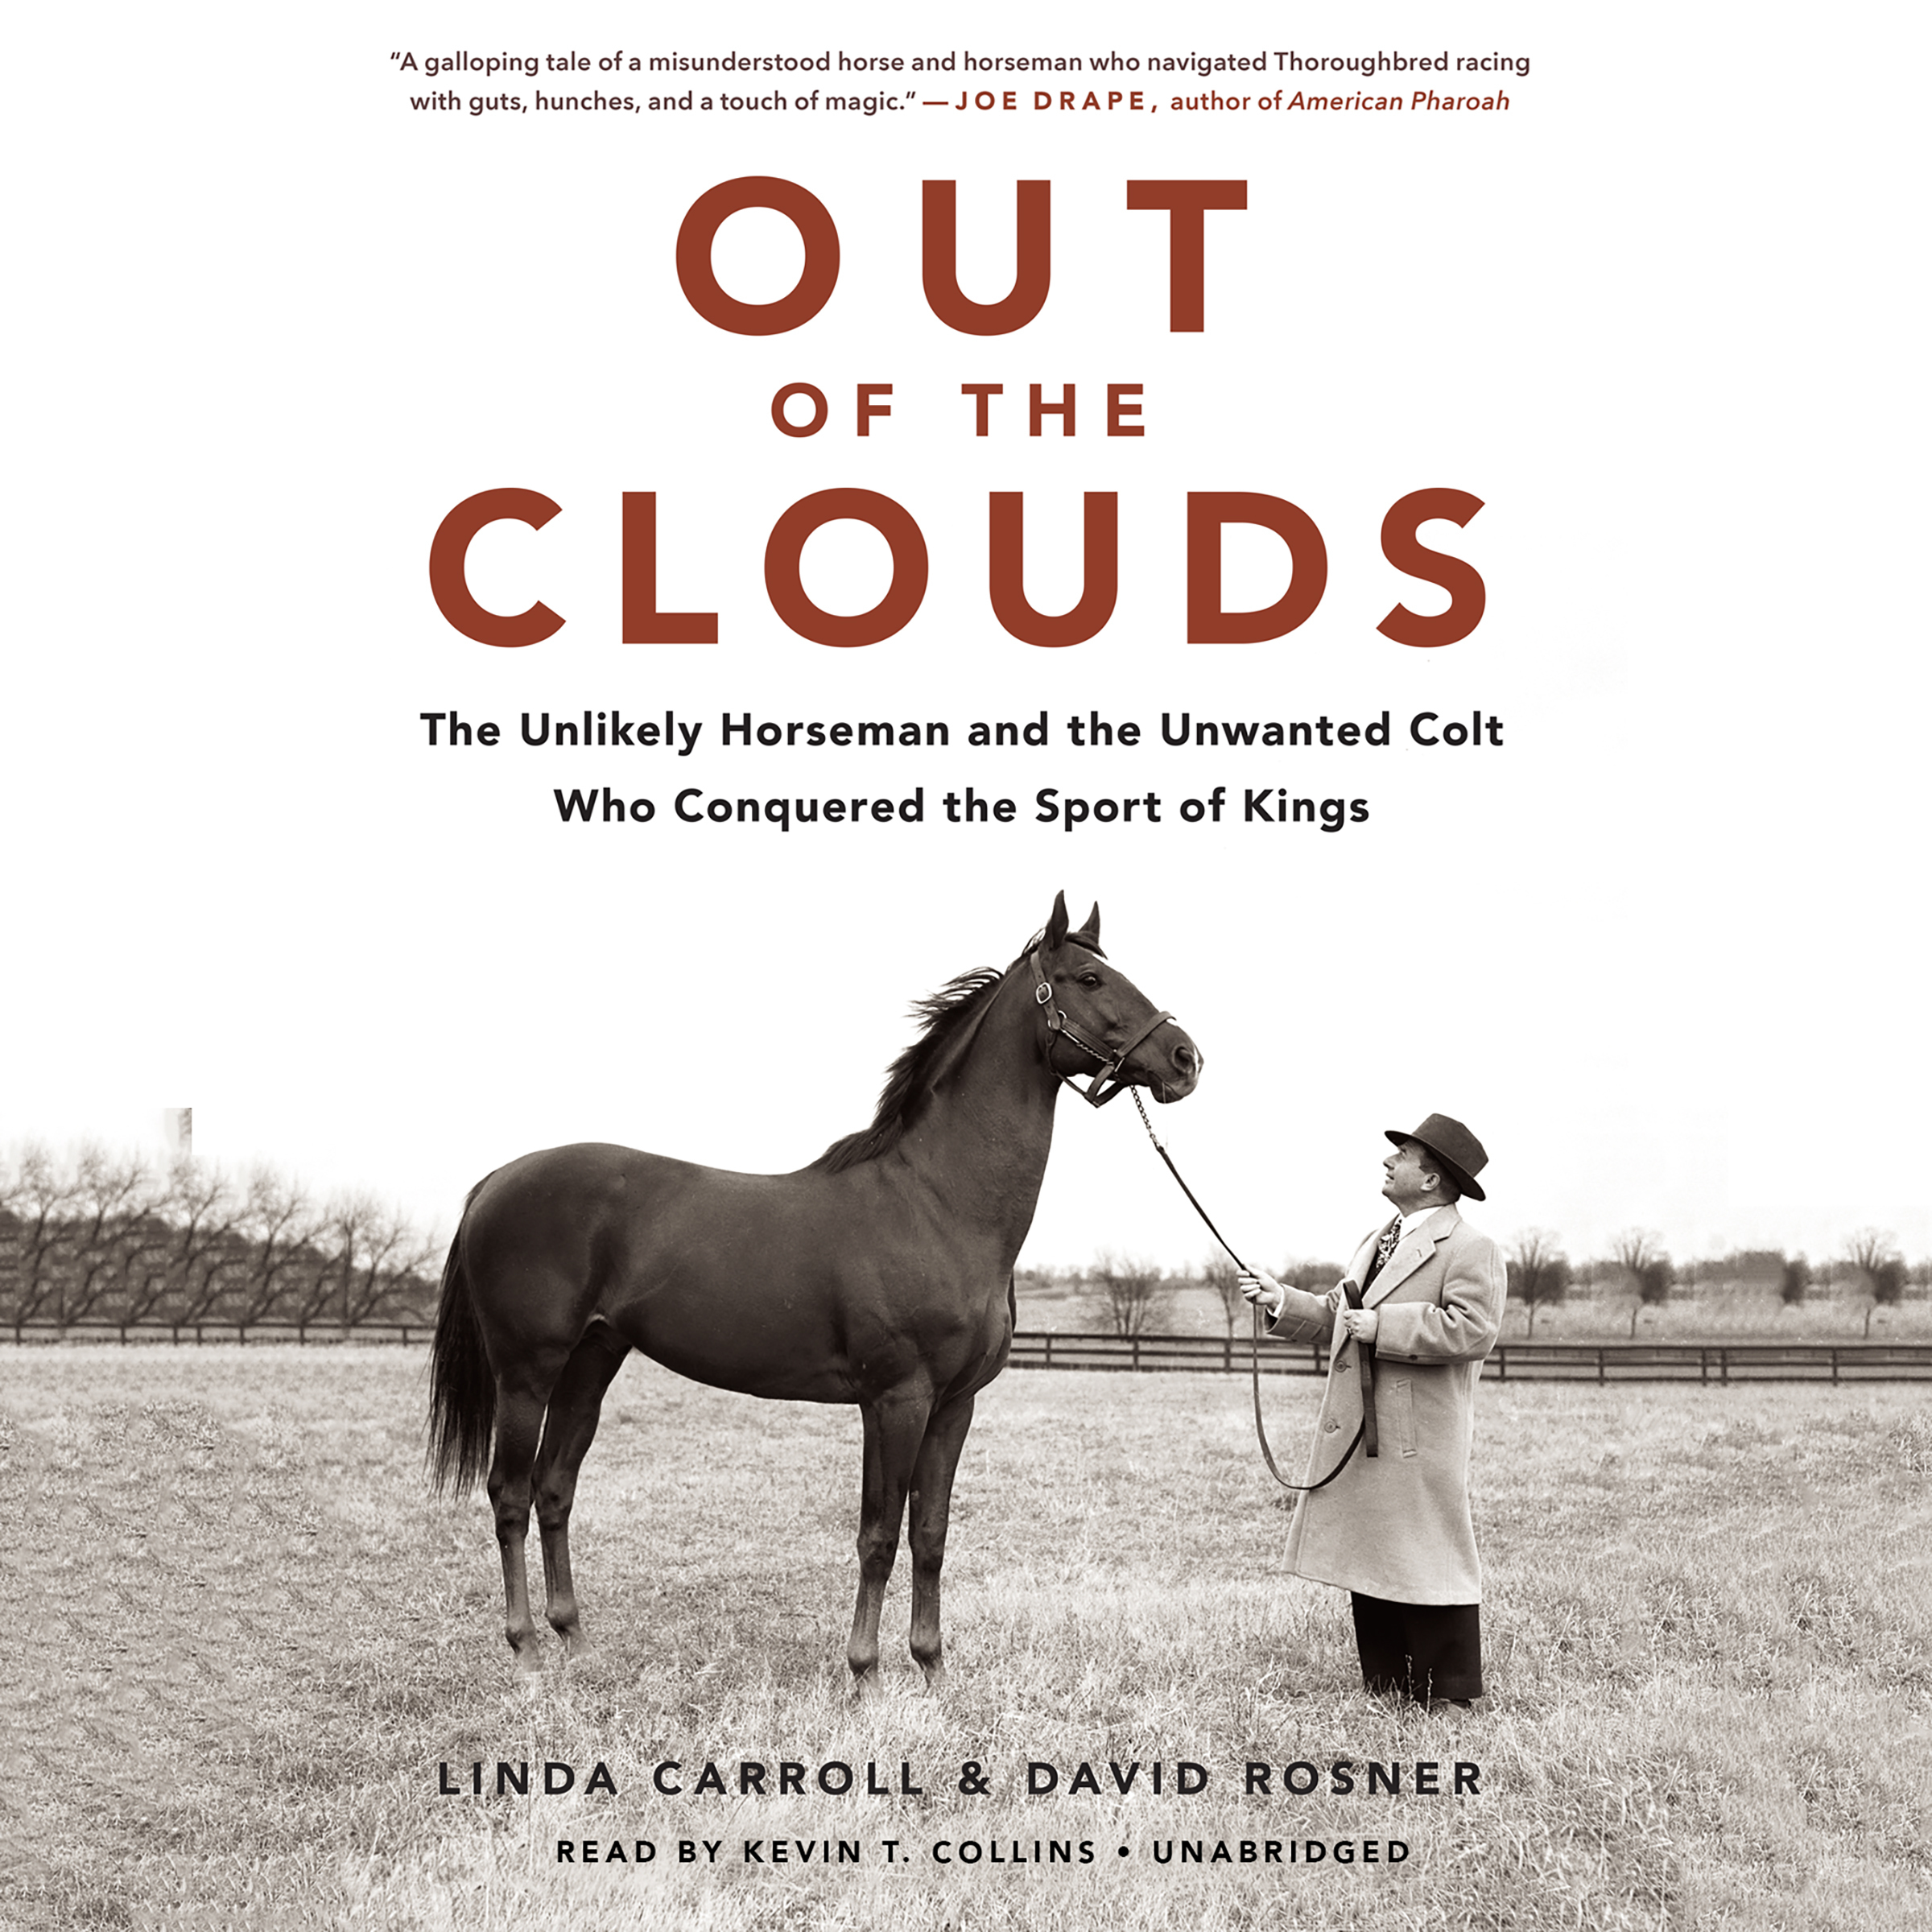 Printable Out of the Clouds: The Unlikely Horseman and the Unwanted Colt Who Conquered the Sport of Kings Audiobook Cover Art